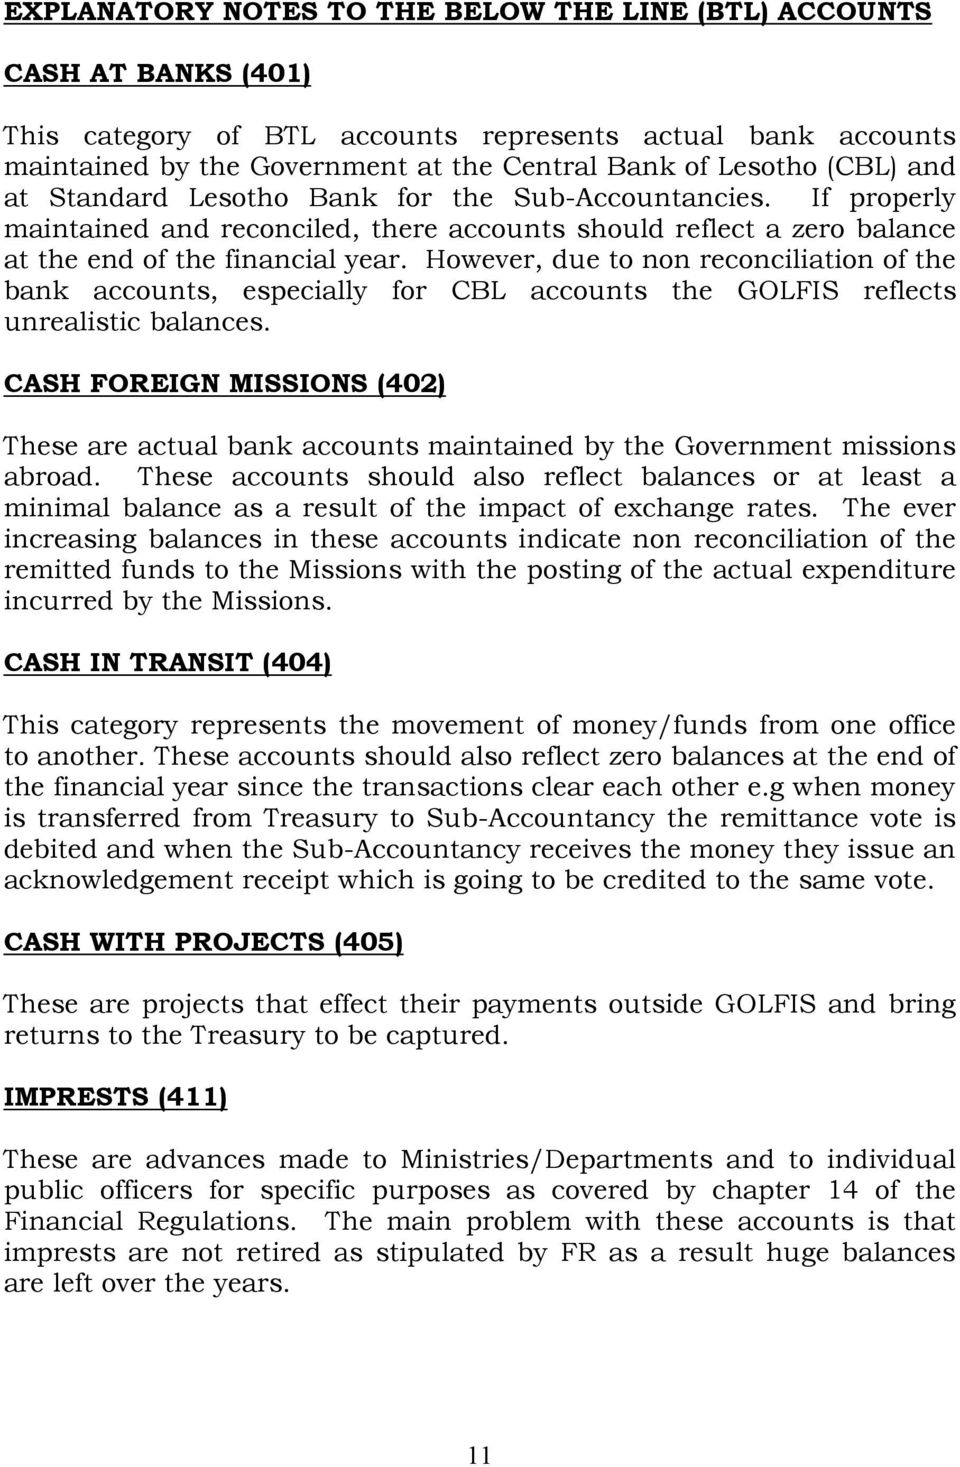 However, due to non reconciliation of the bank accounts, especially for CBL accounts the GOLFIS reflects unrealistic balances.